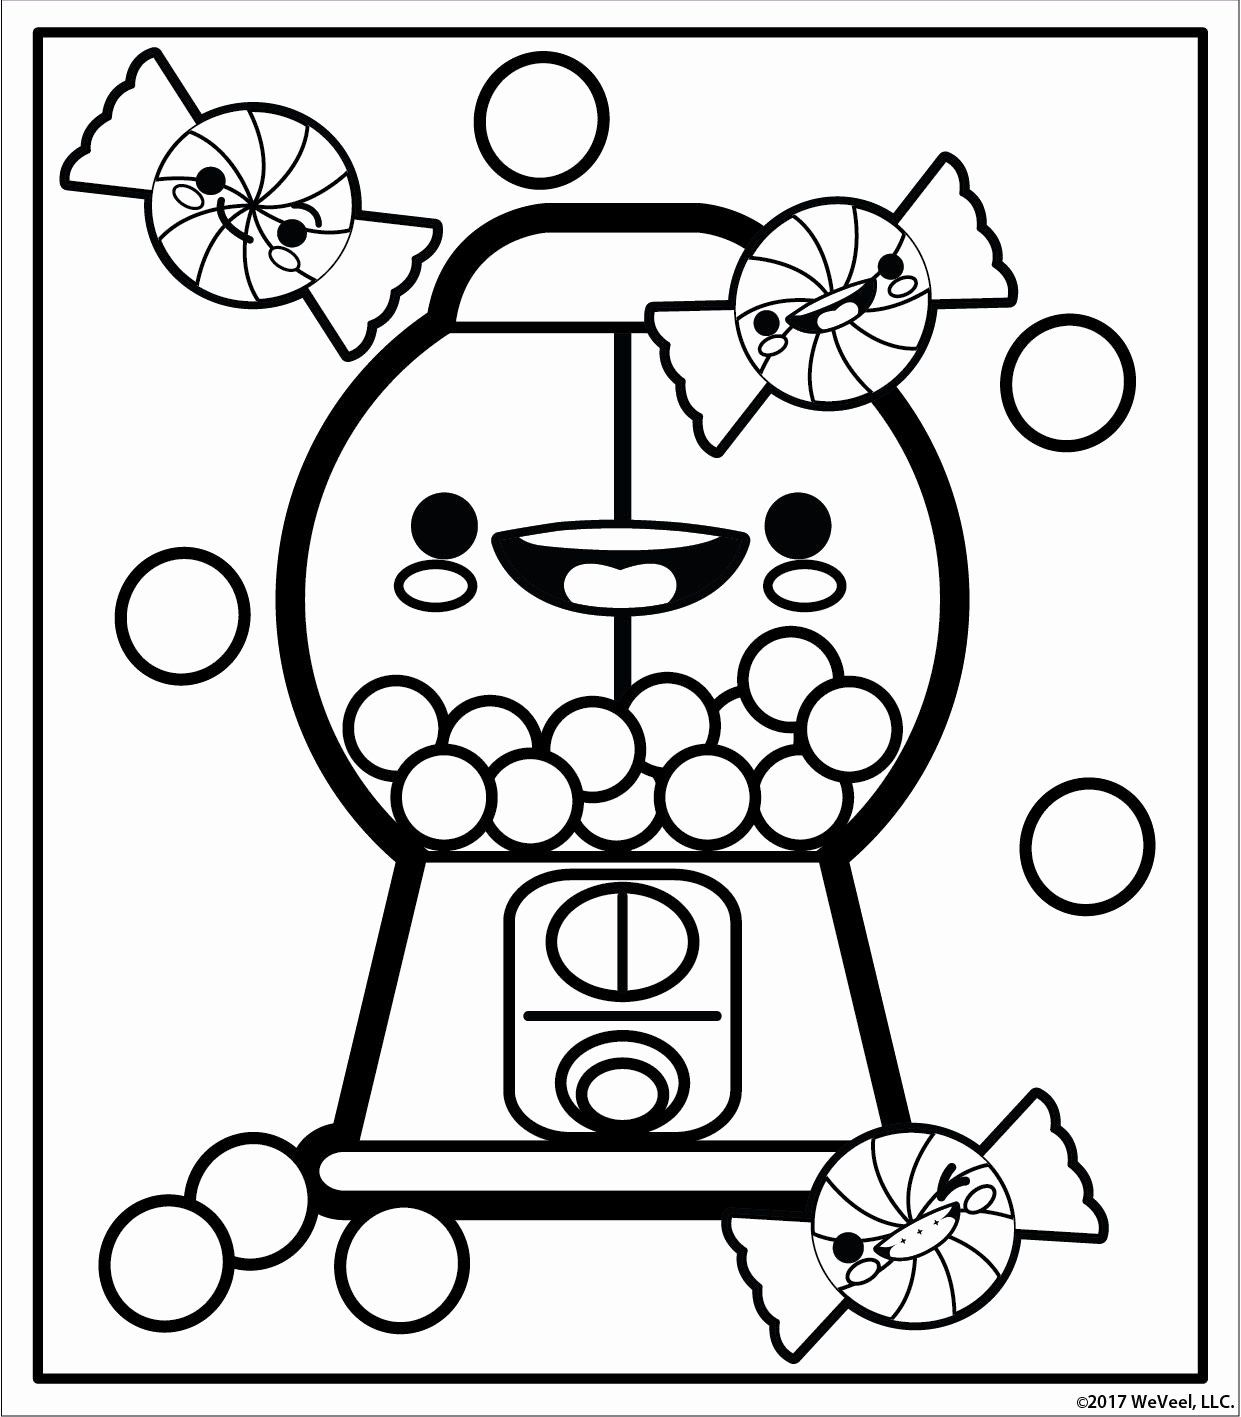 Cute Spring Coloring Pages Unique Free Printable Coloring Pages At Scentos Cute Girl In 2020 Spring Coloring Pages Candy Coloring Pages Free Kids Coloring Pages